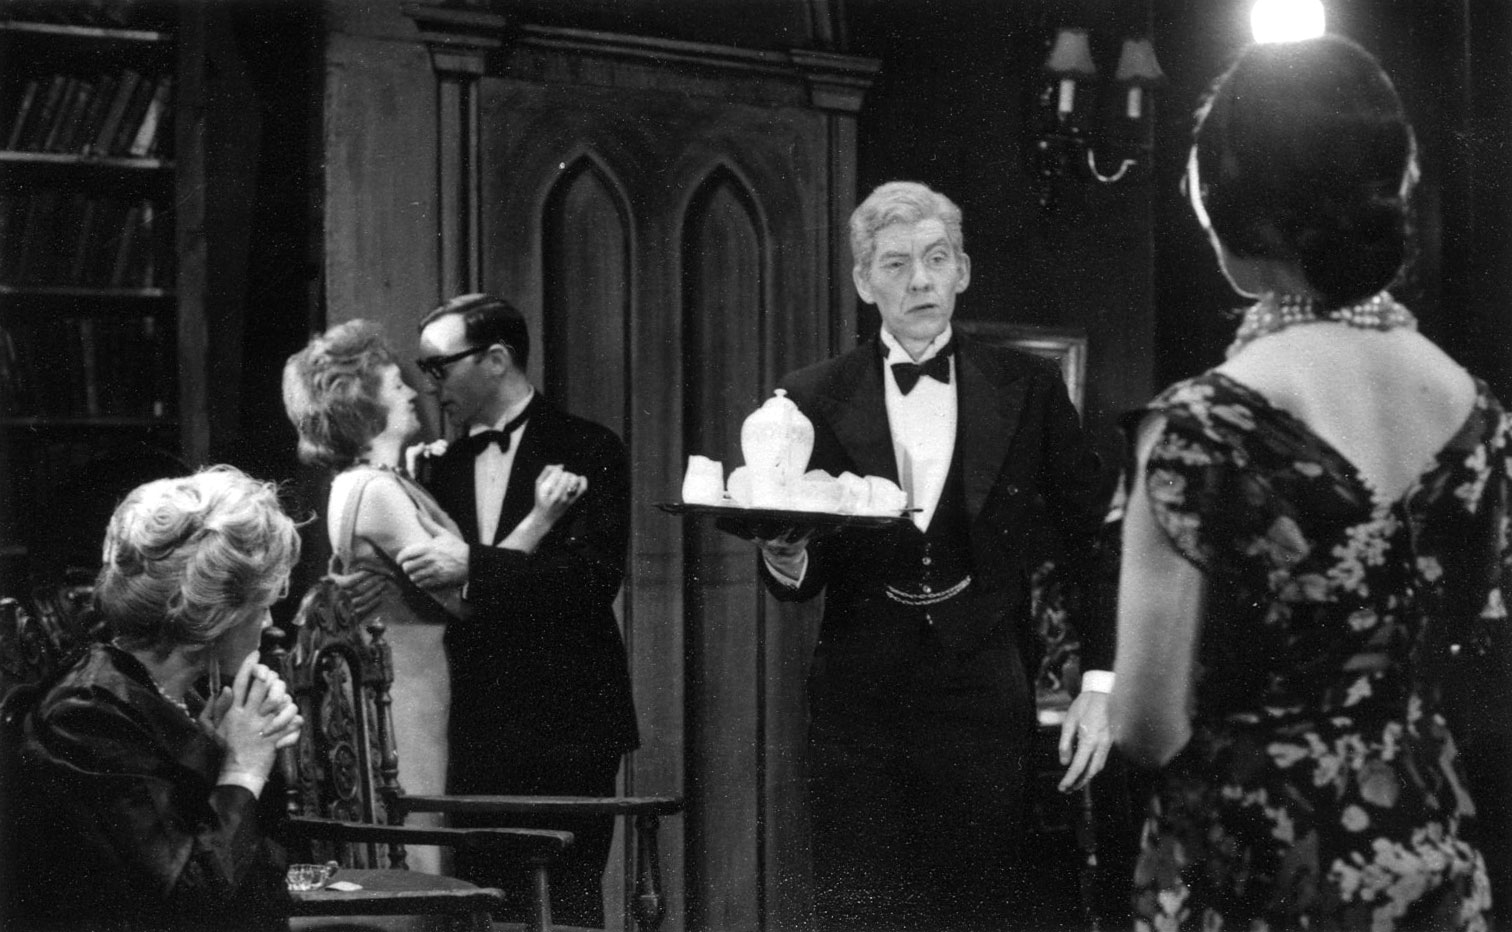 L to R: Bridget Turner, John Scarborough, Ian McKellen, Kristine Howarth.<BR><BR><em>I played the ancient butler (Tredwell) with hesitant